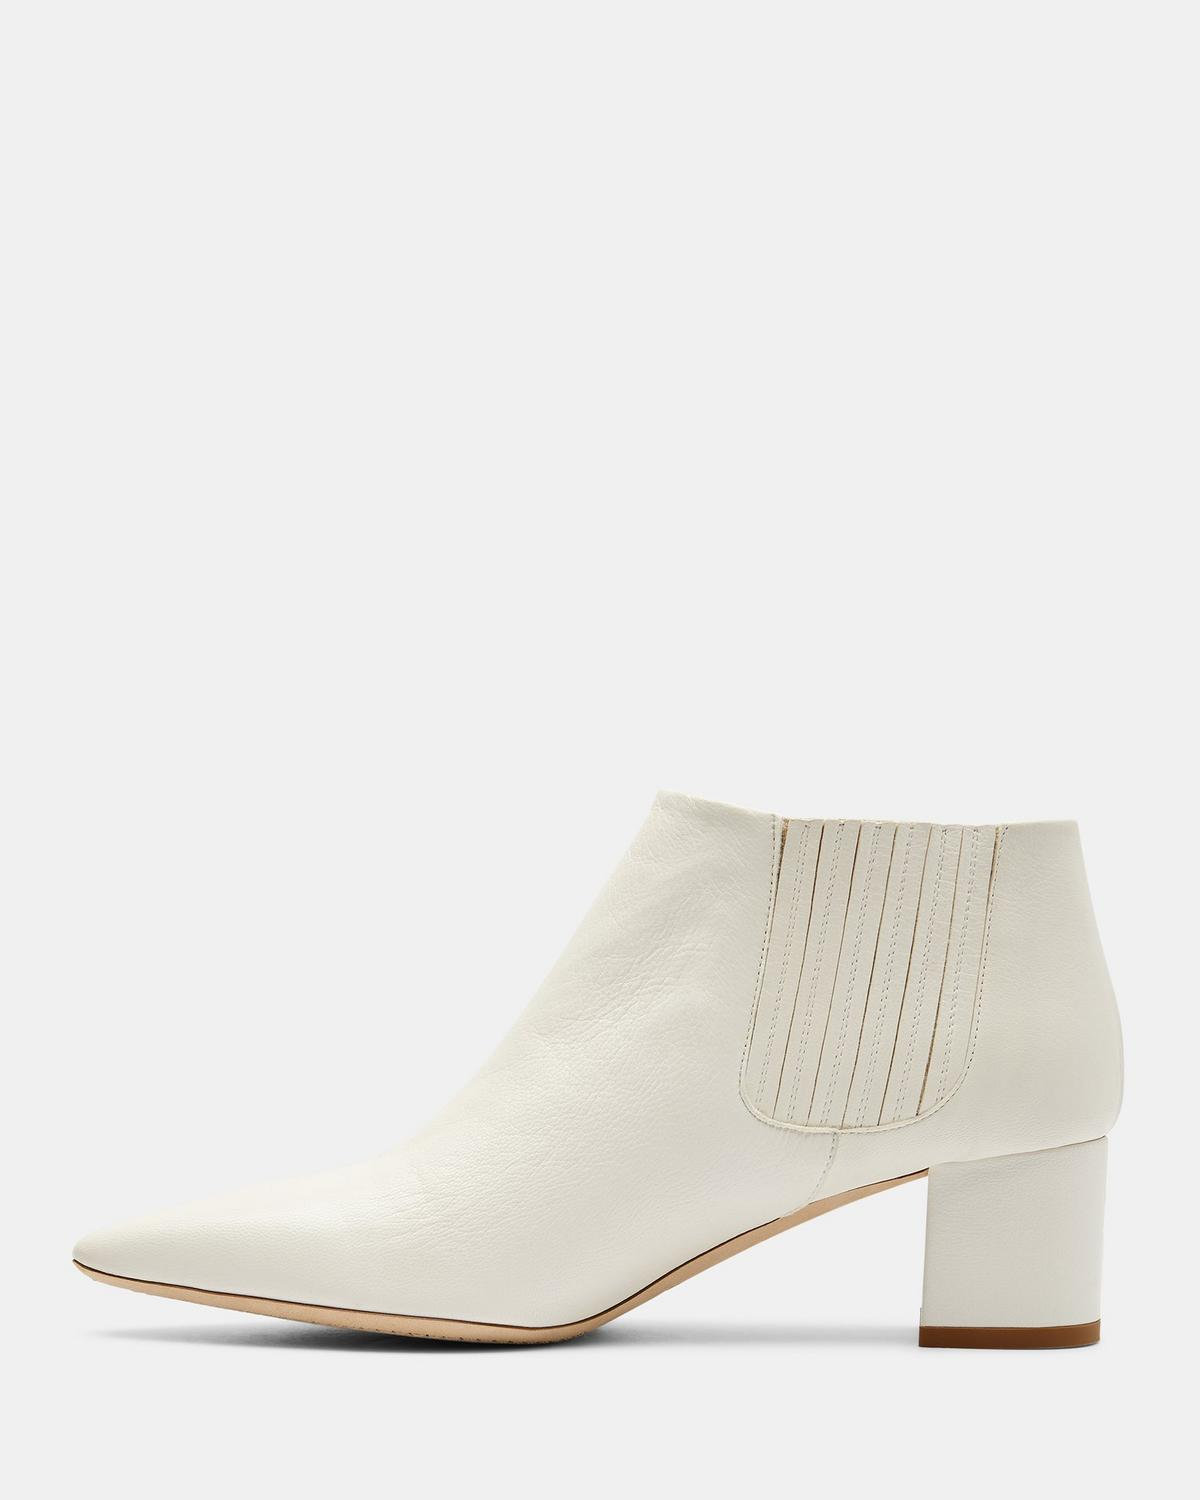 89a7f99cc2a Leather Mid Heel Bootie